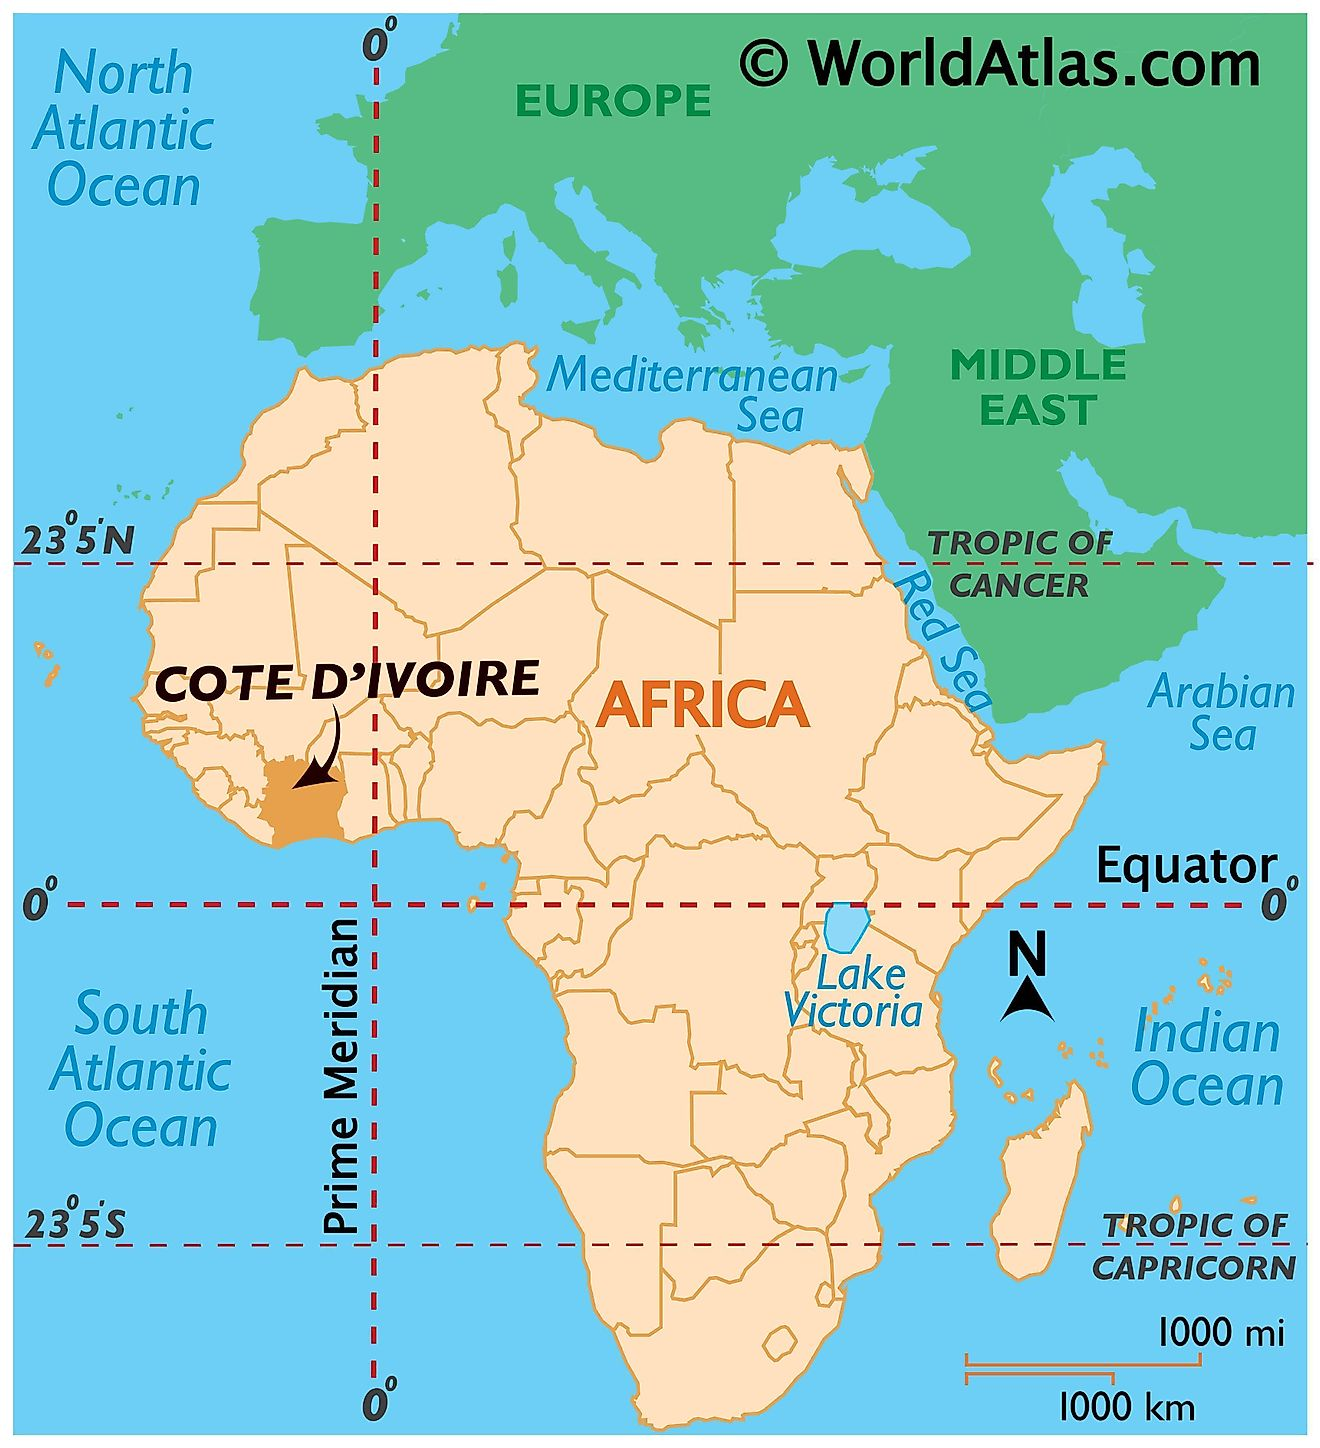 Map showing location of Cote d'Ivoire in the world.